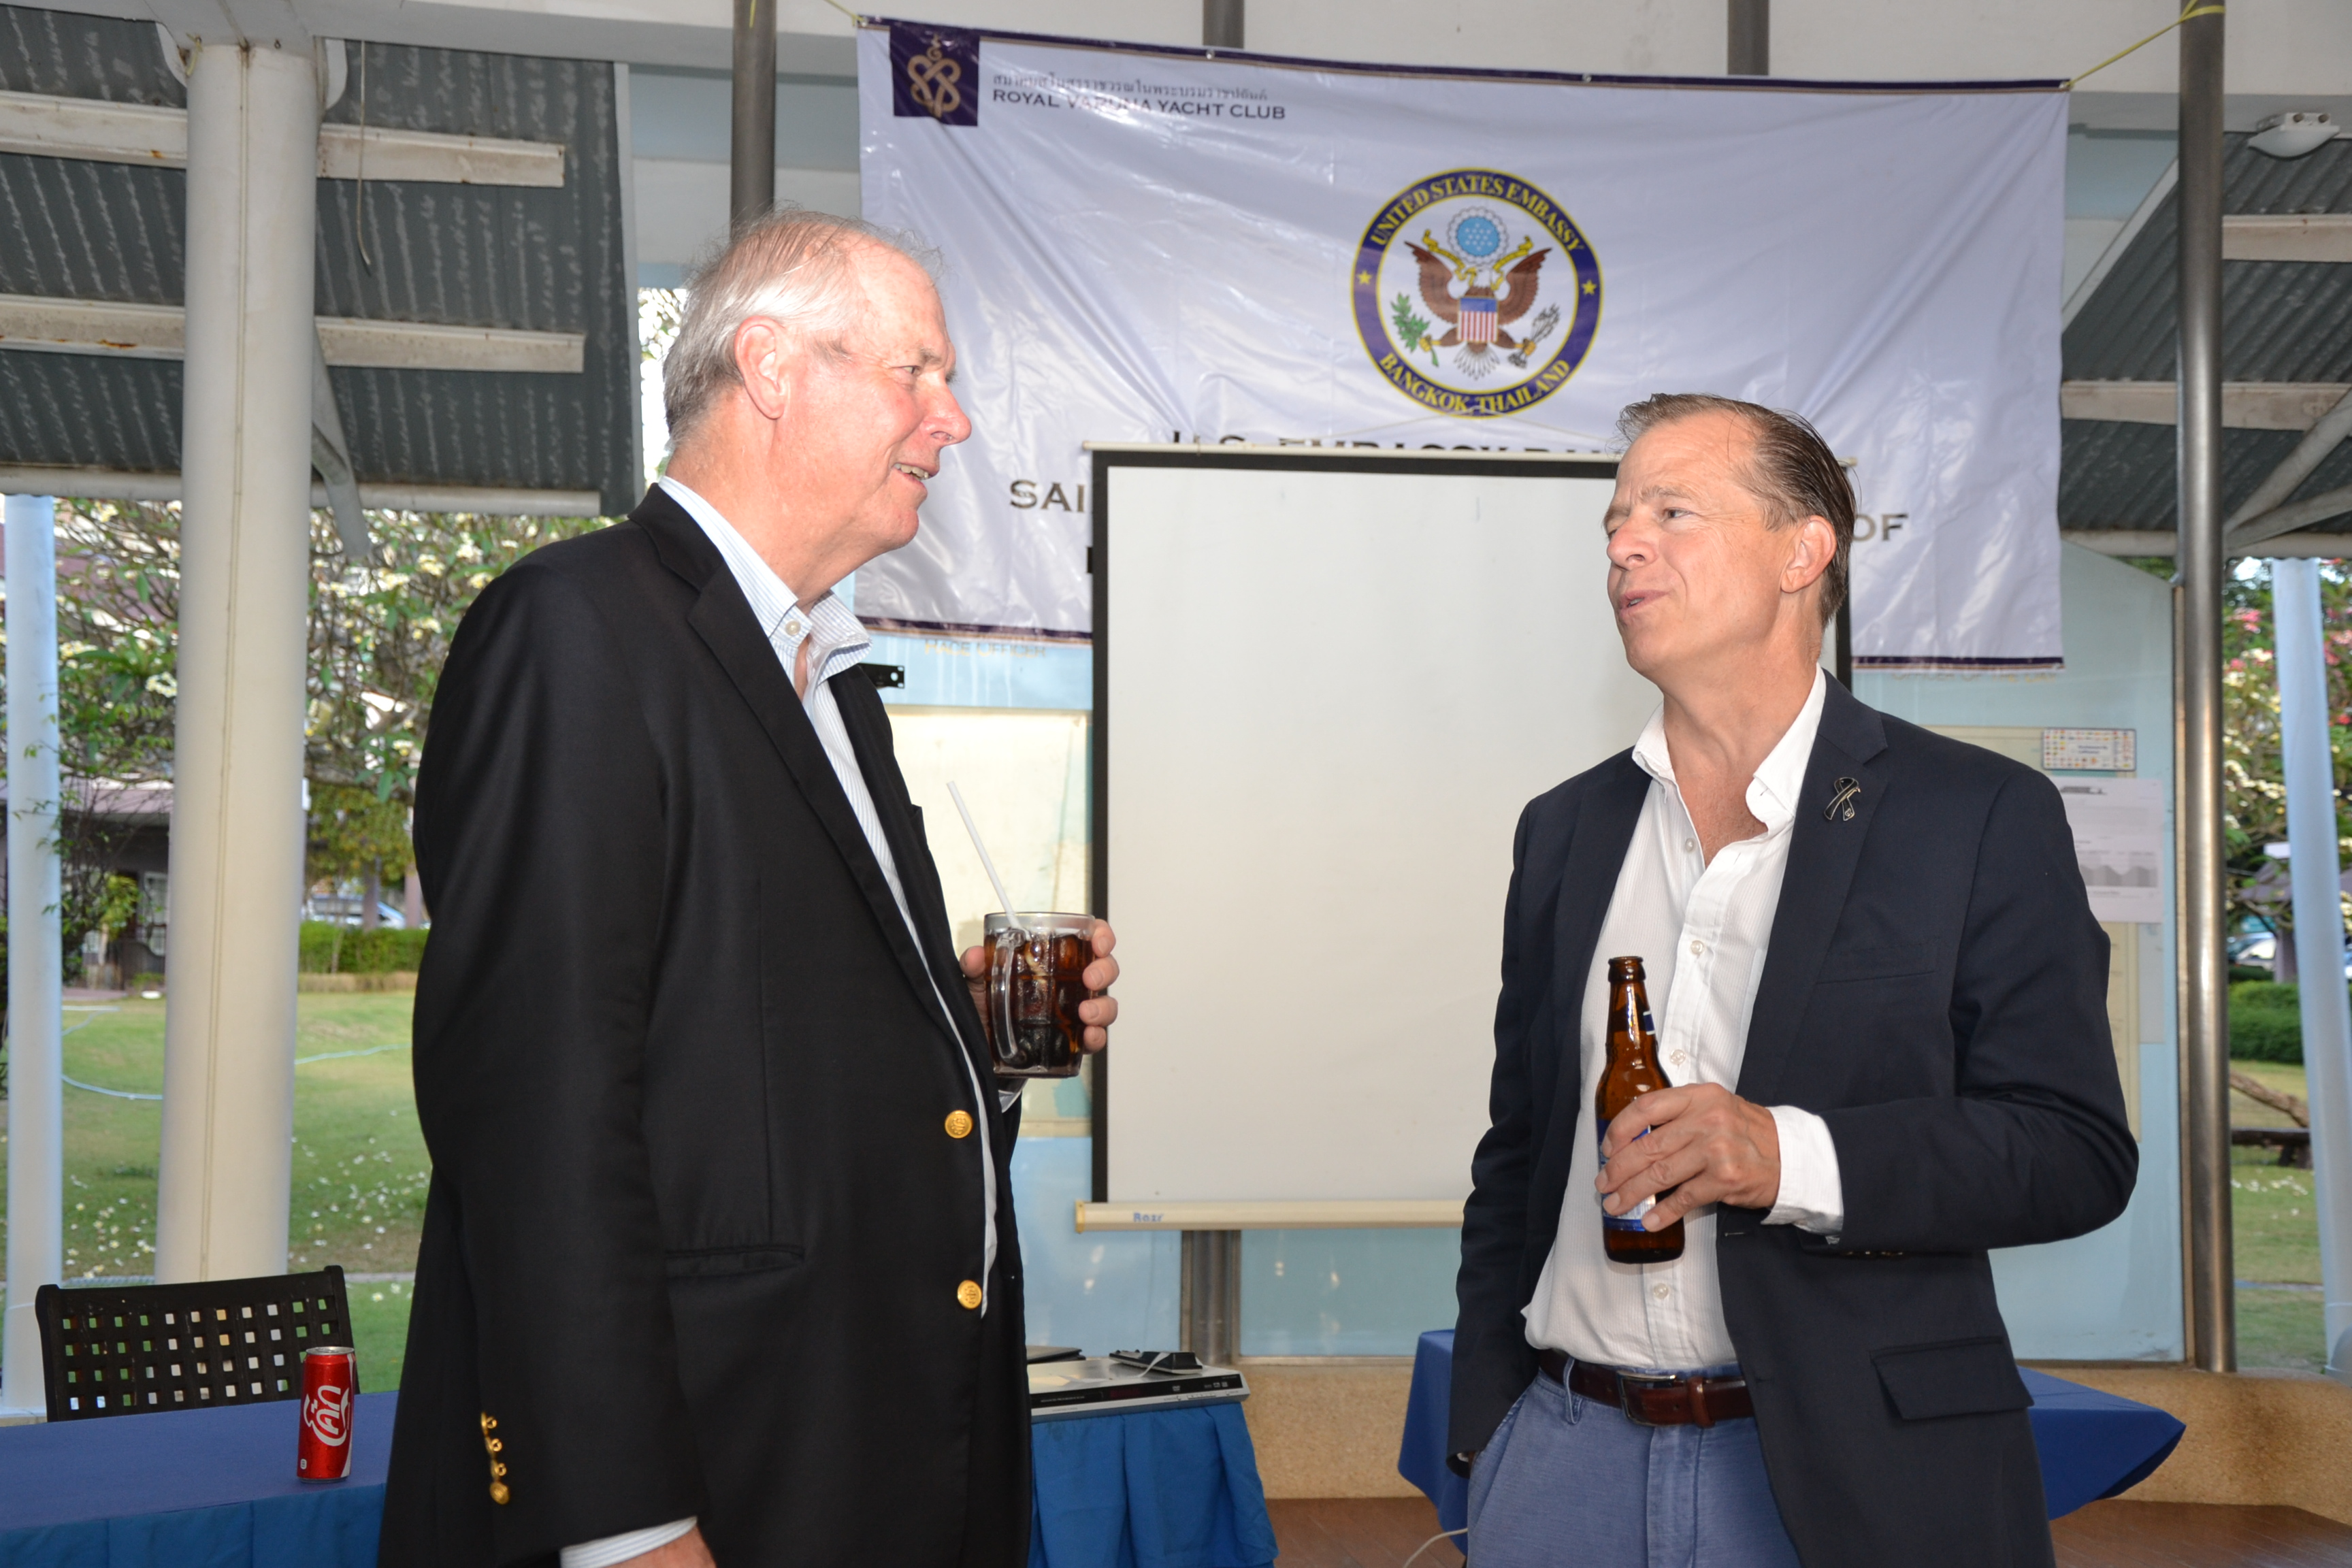 Gary Jobson and Ambassador Davies engage in light conversation.